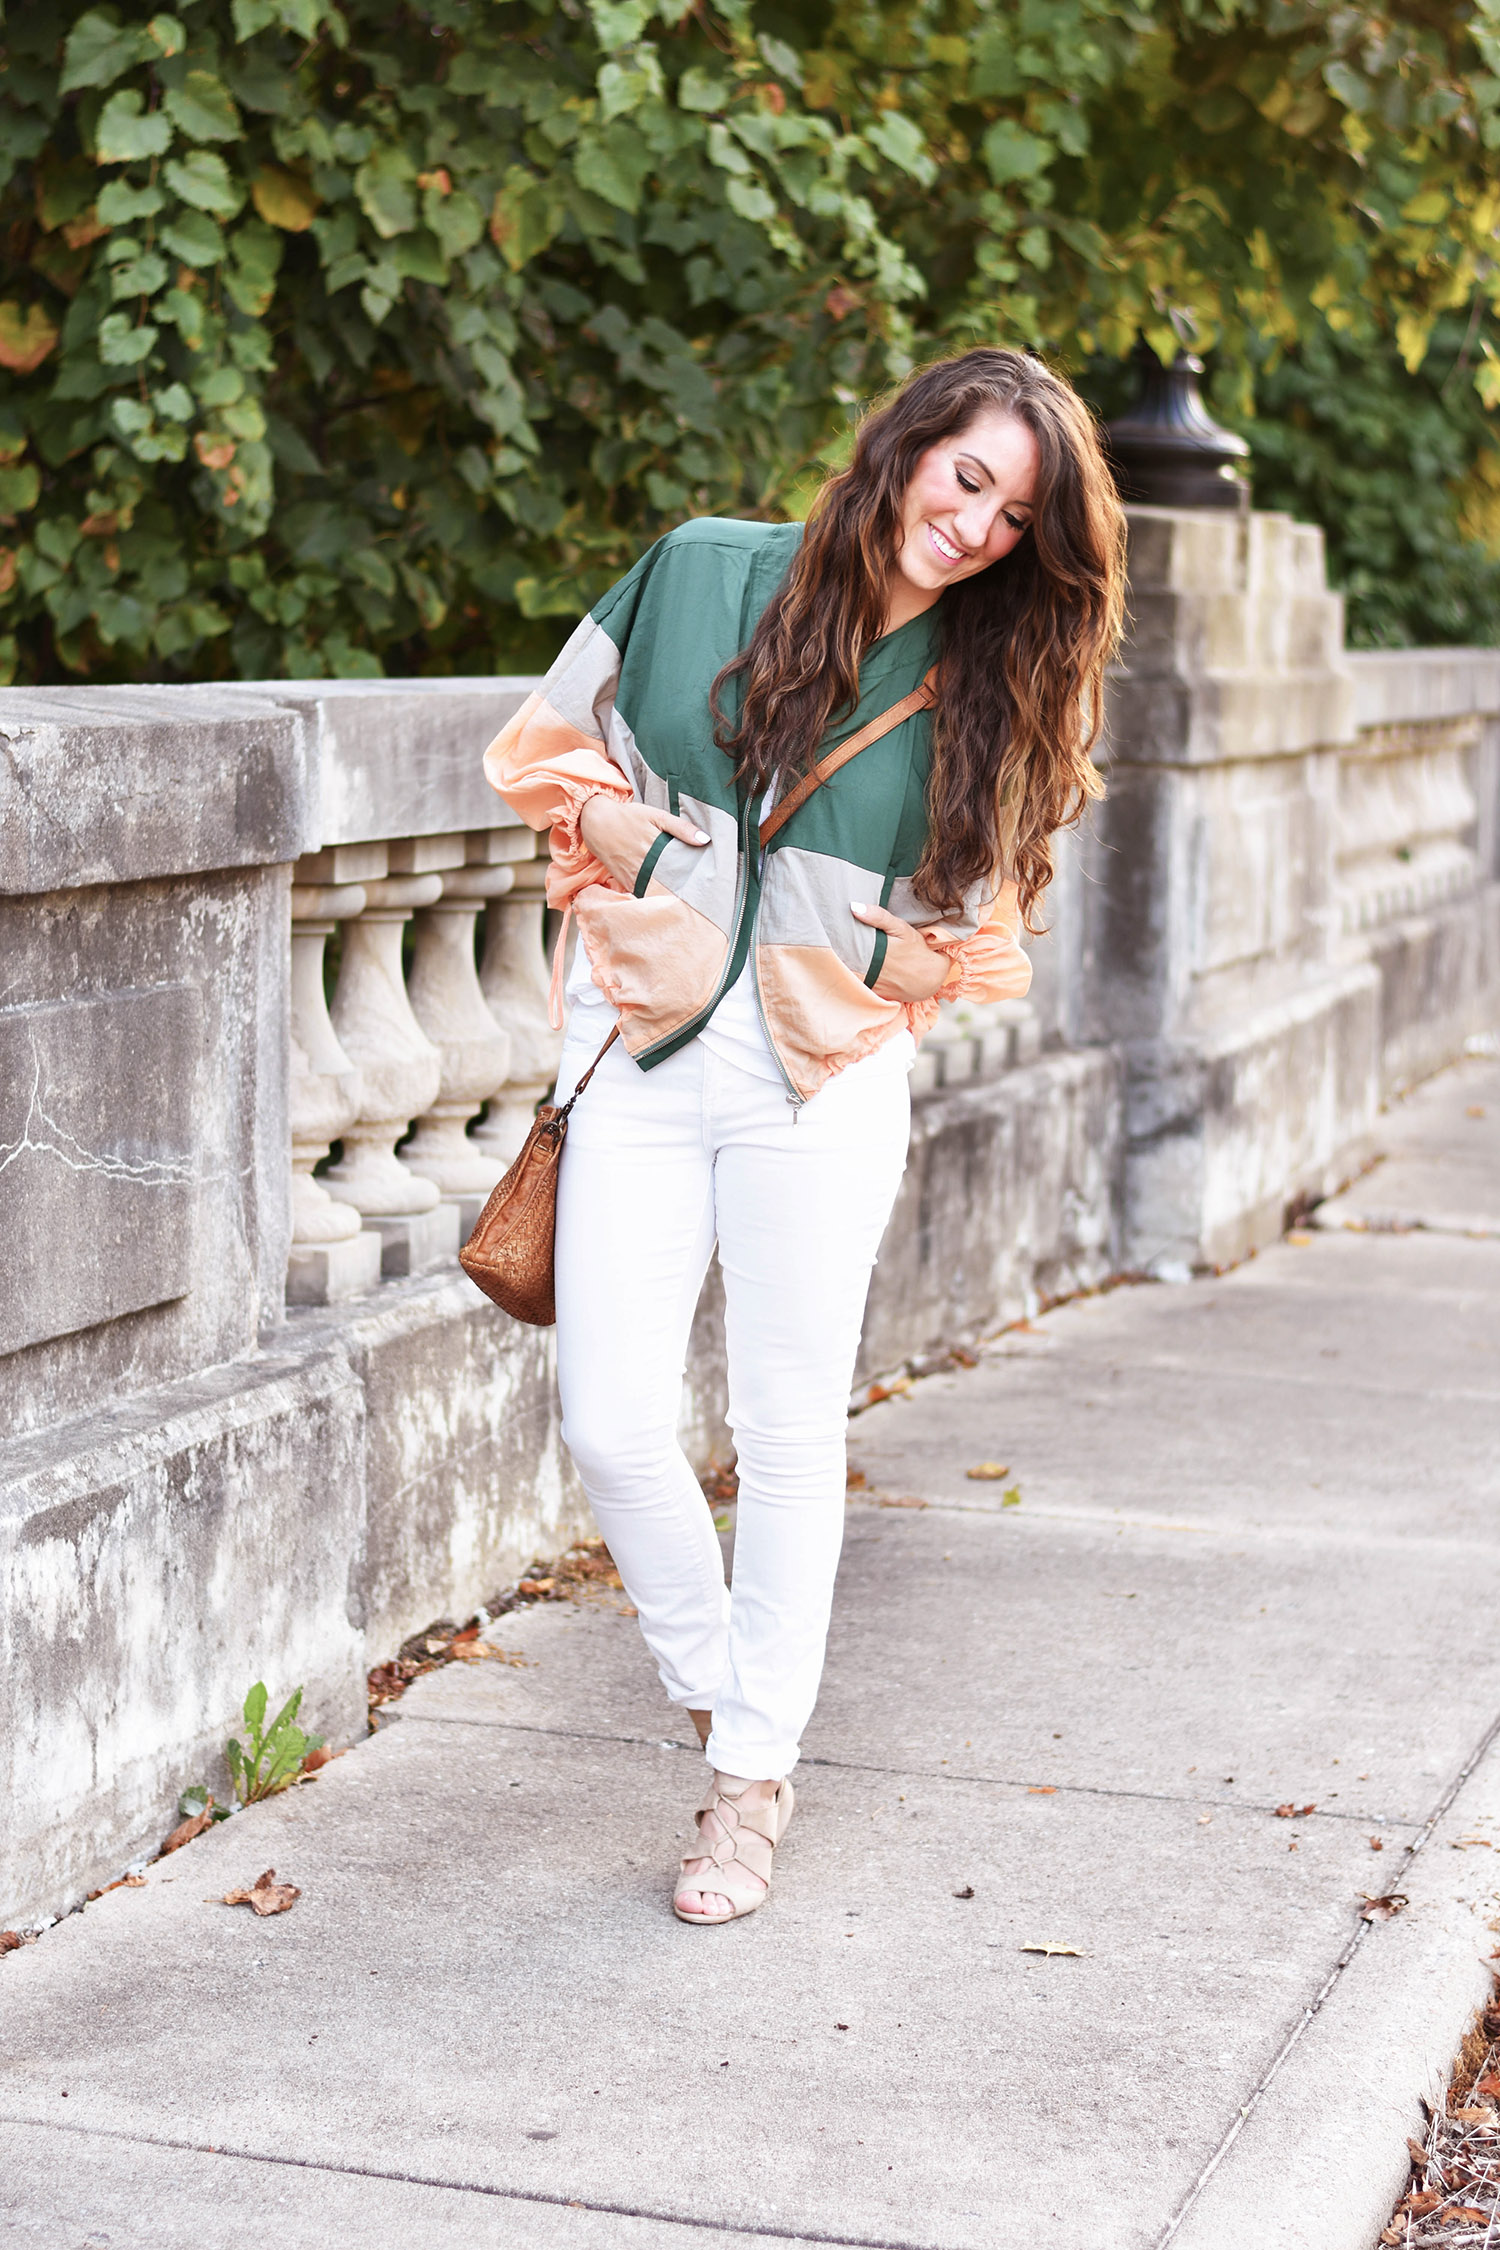 Anthropologie jacket [ similar , but love  this one  and  this one ], tank [ classic ], jeans [ perfect fall sateen white ], bag [ similar , but crushing on  this ] // heels [ heart eyes for this pair , but similar  here ] //  MAC lipstick in Lovelorn